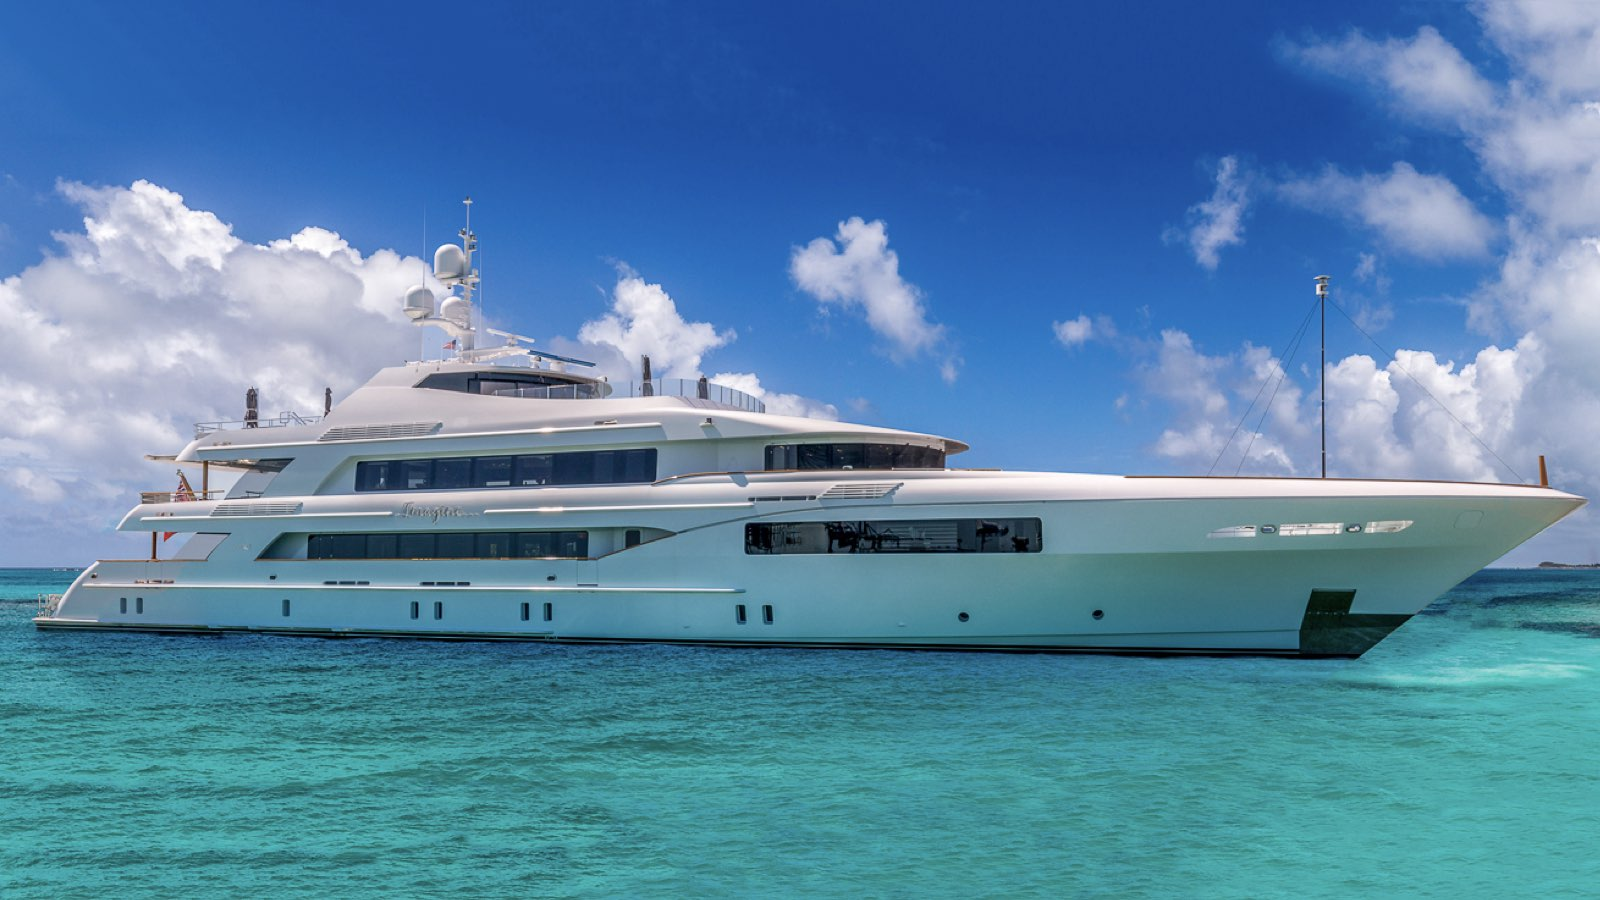 Over 100 Luxury Yachts For Sale Mega Yachts For Sale By IYC